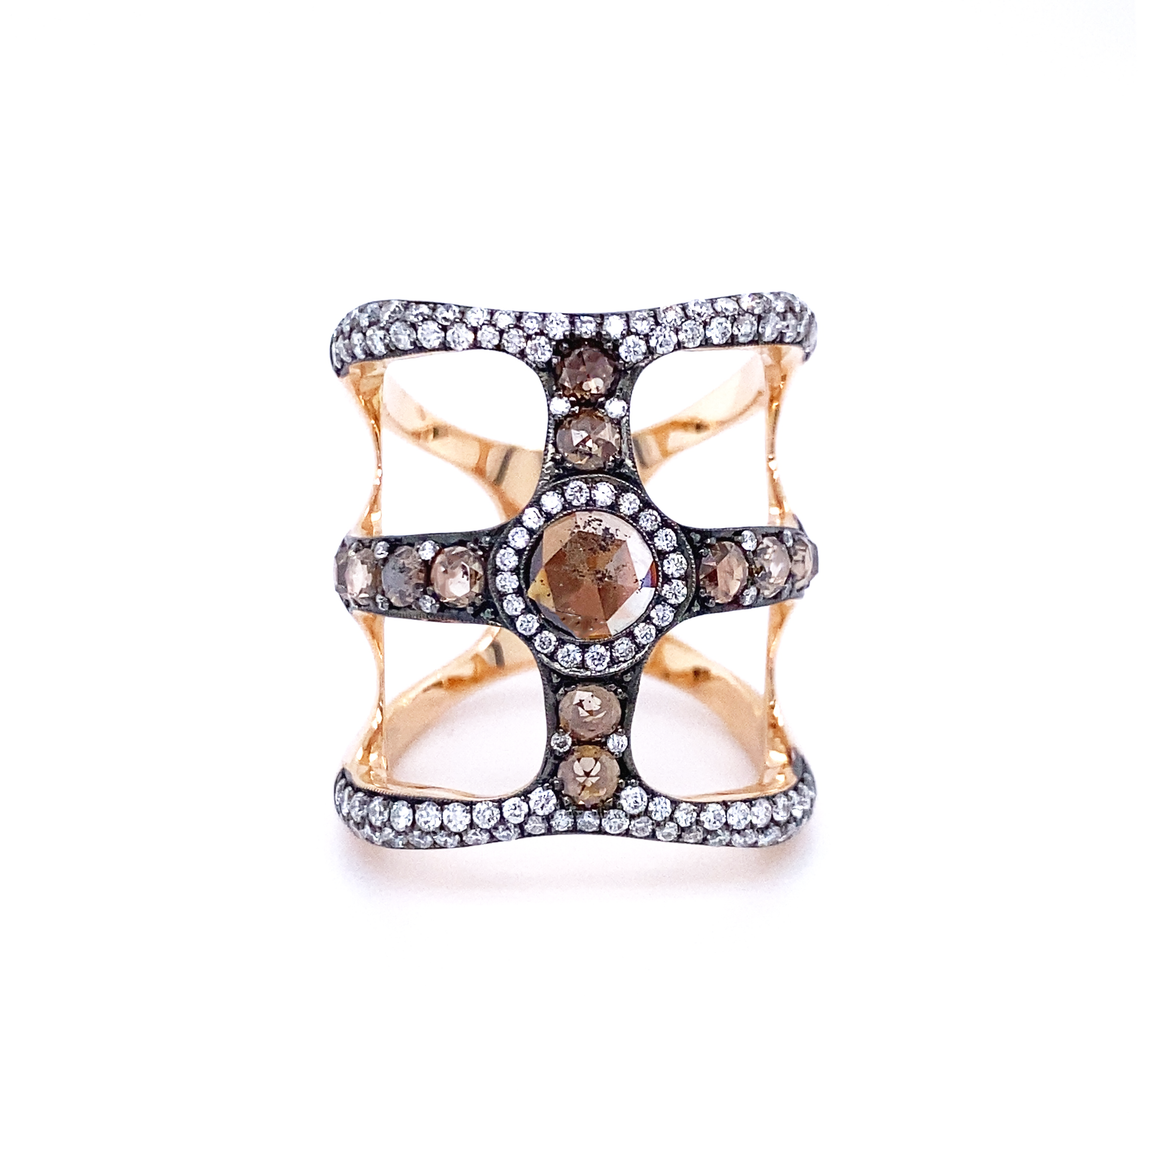 Cognac Diamond Cage Ring - Lesley Ann Jewels